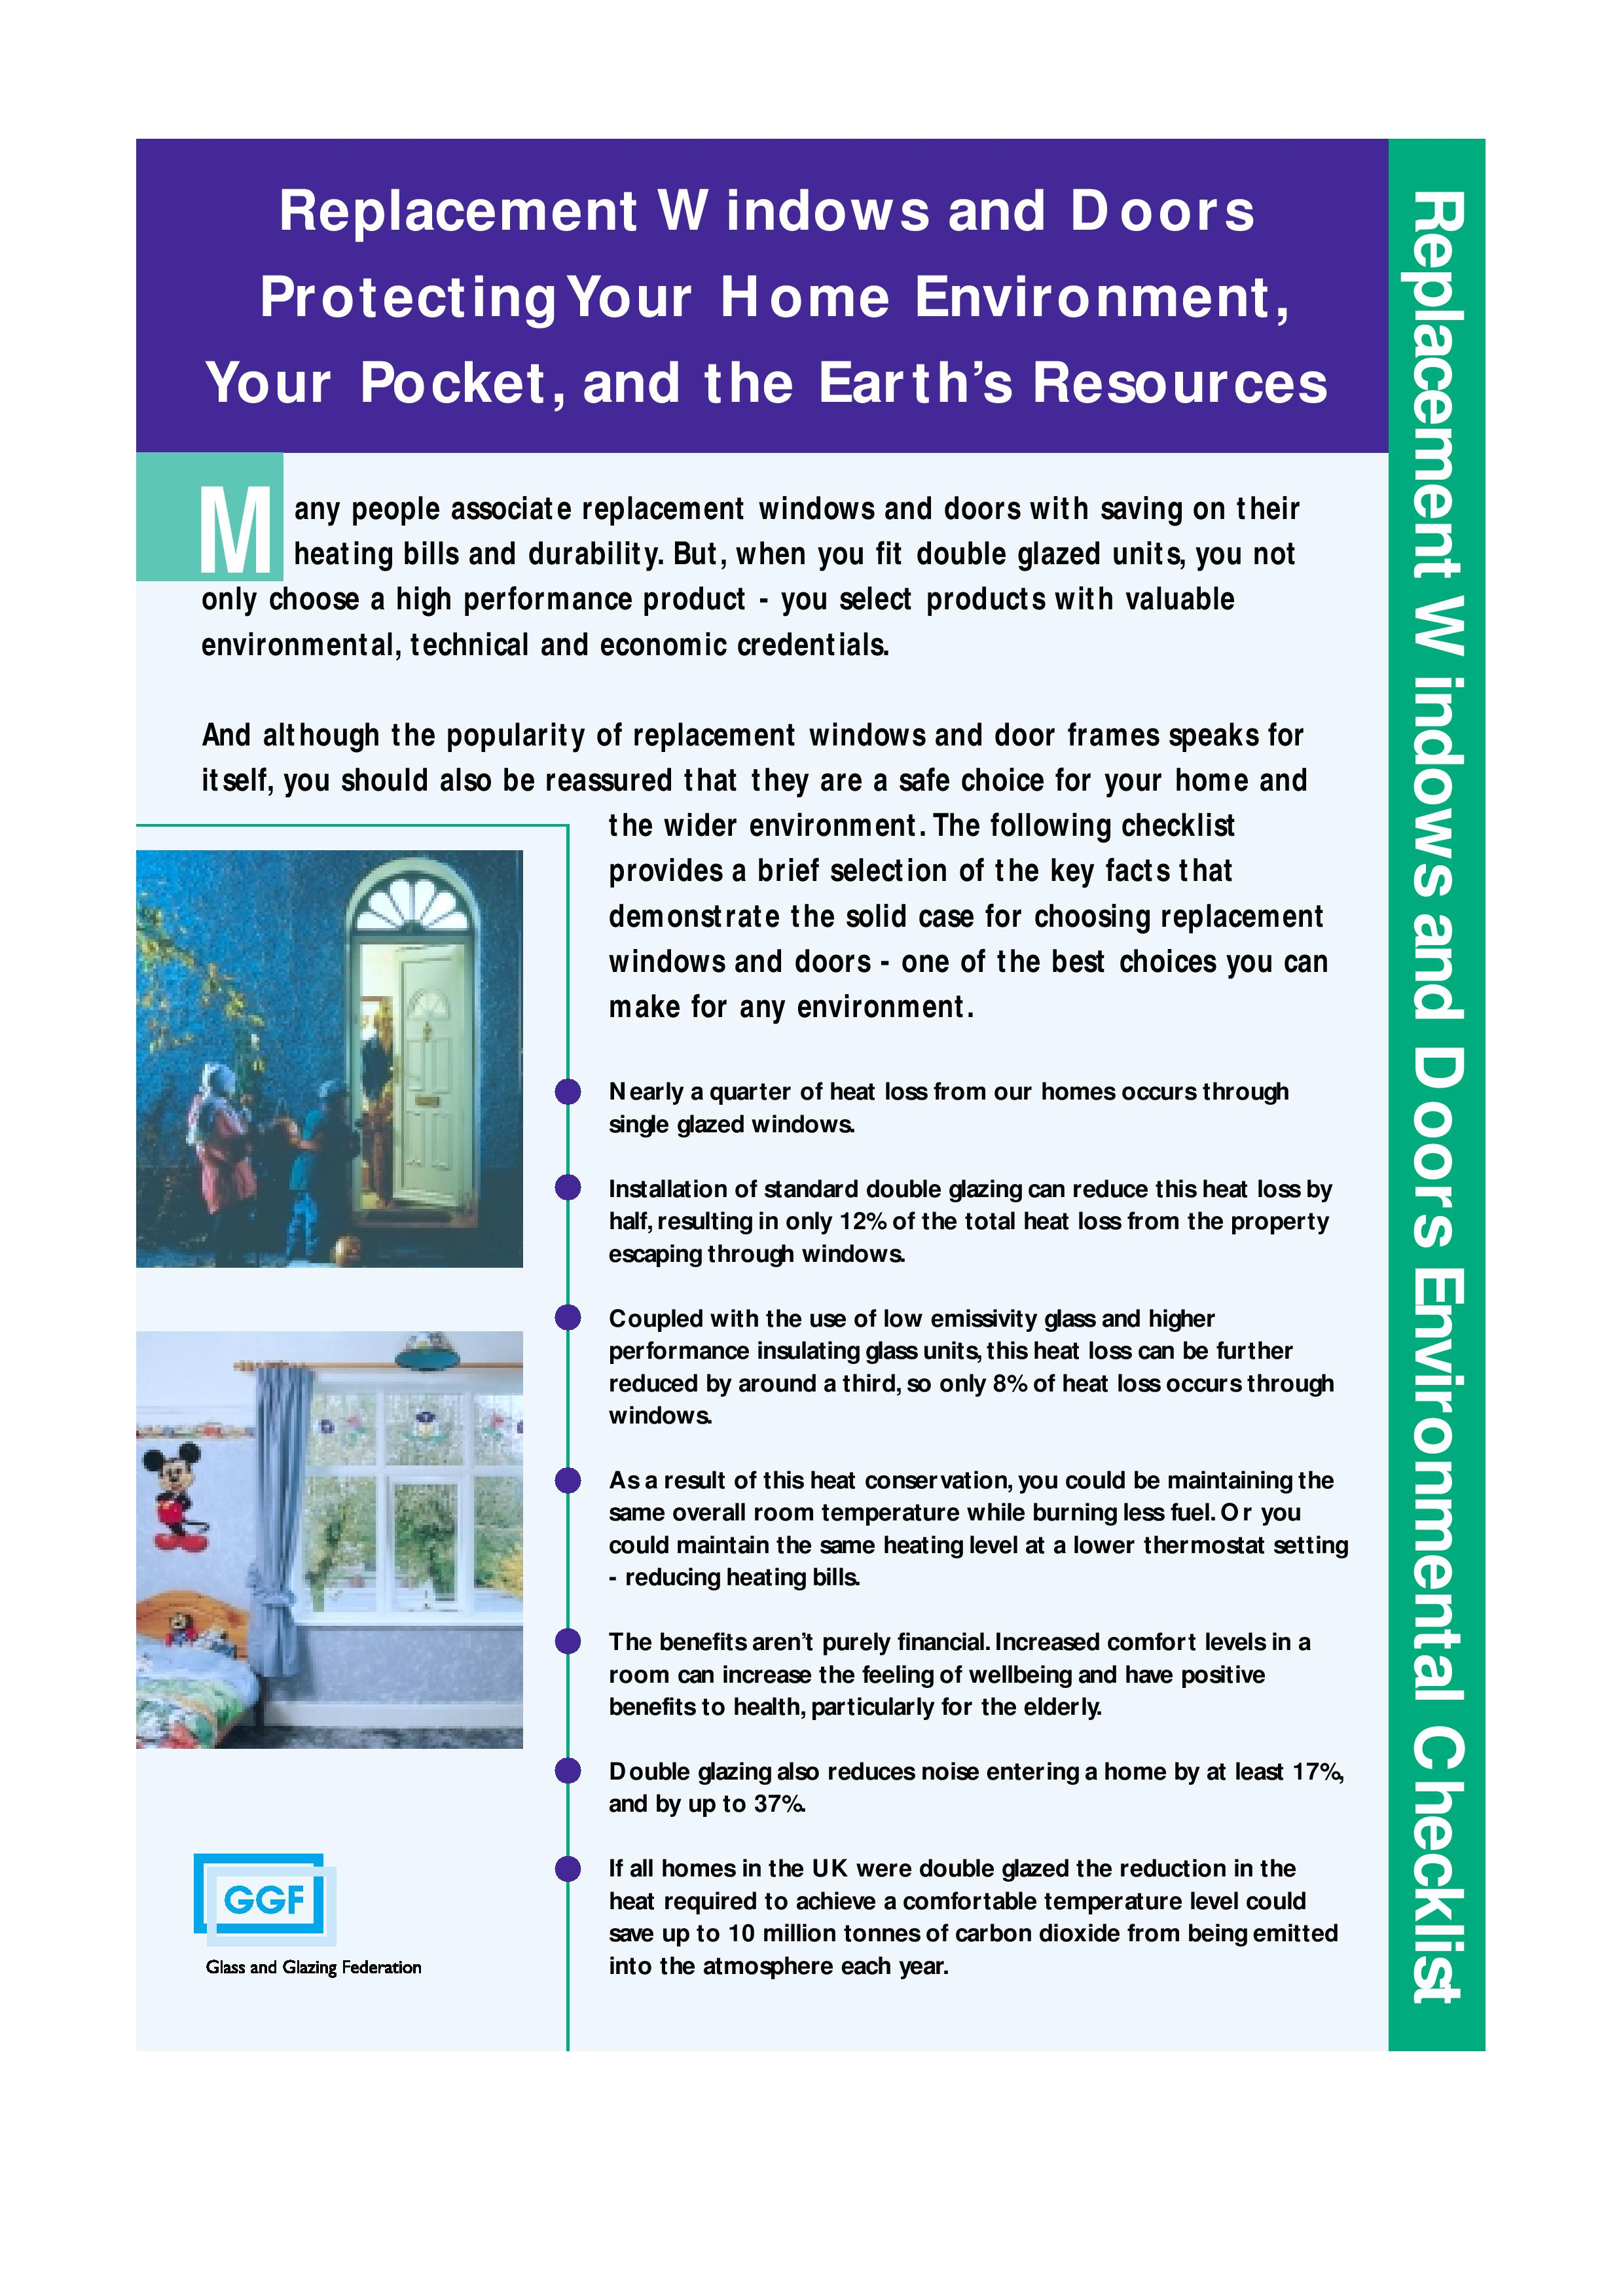 Replacement Windows And Doors Environmental Checklist Glass And